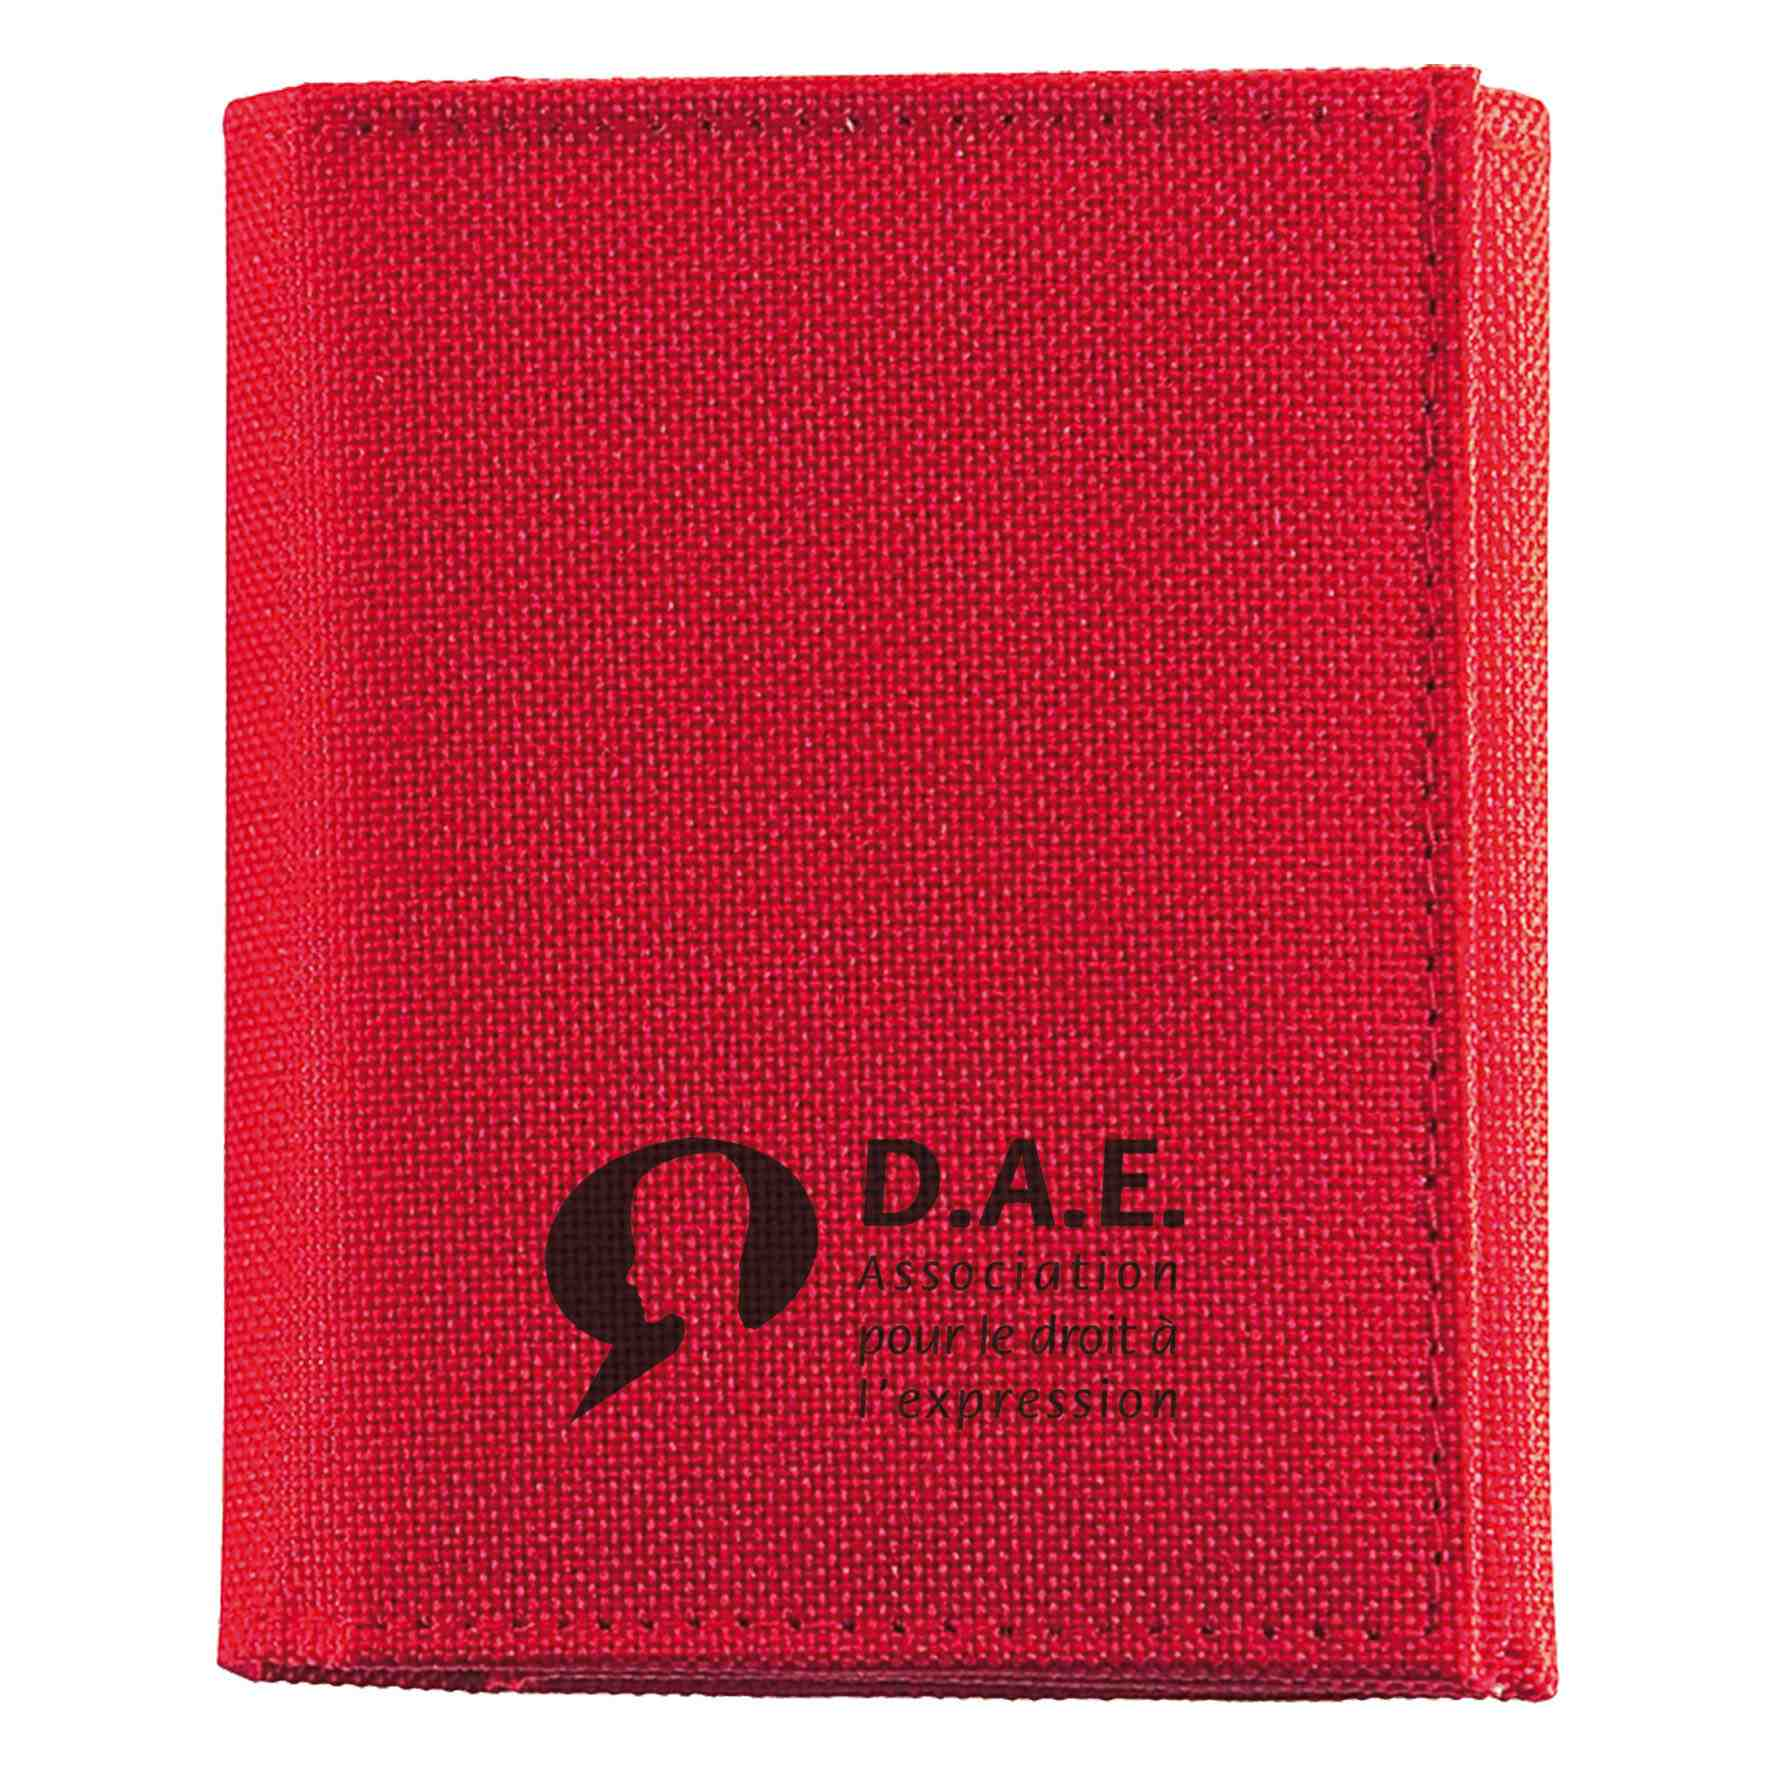 Goodies - Porte-Monnaie publicitaire multipoches Polyester - rouge